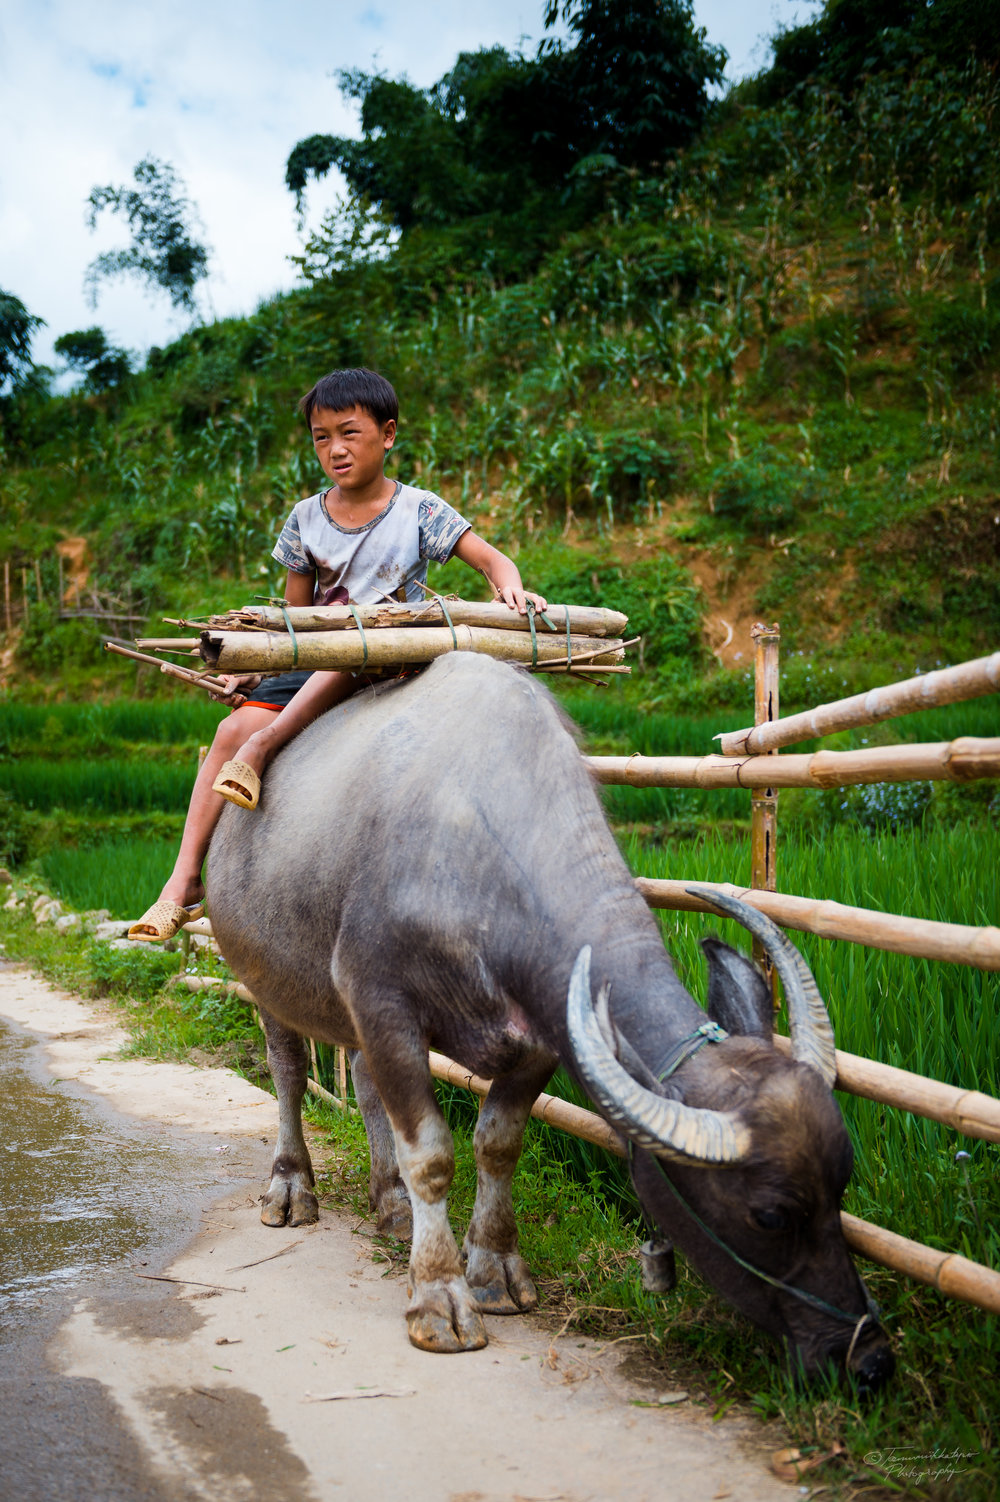 A young boy and his water buffalo